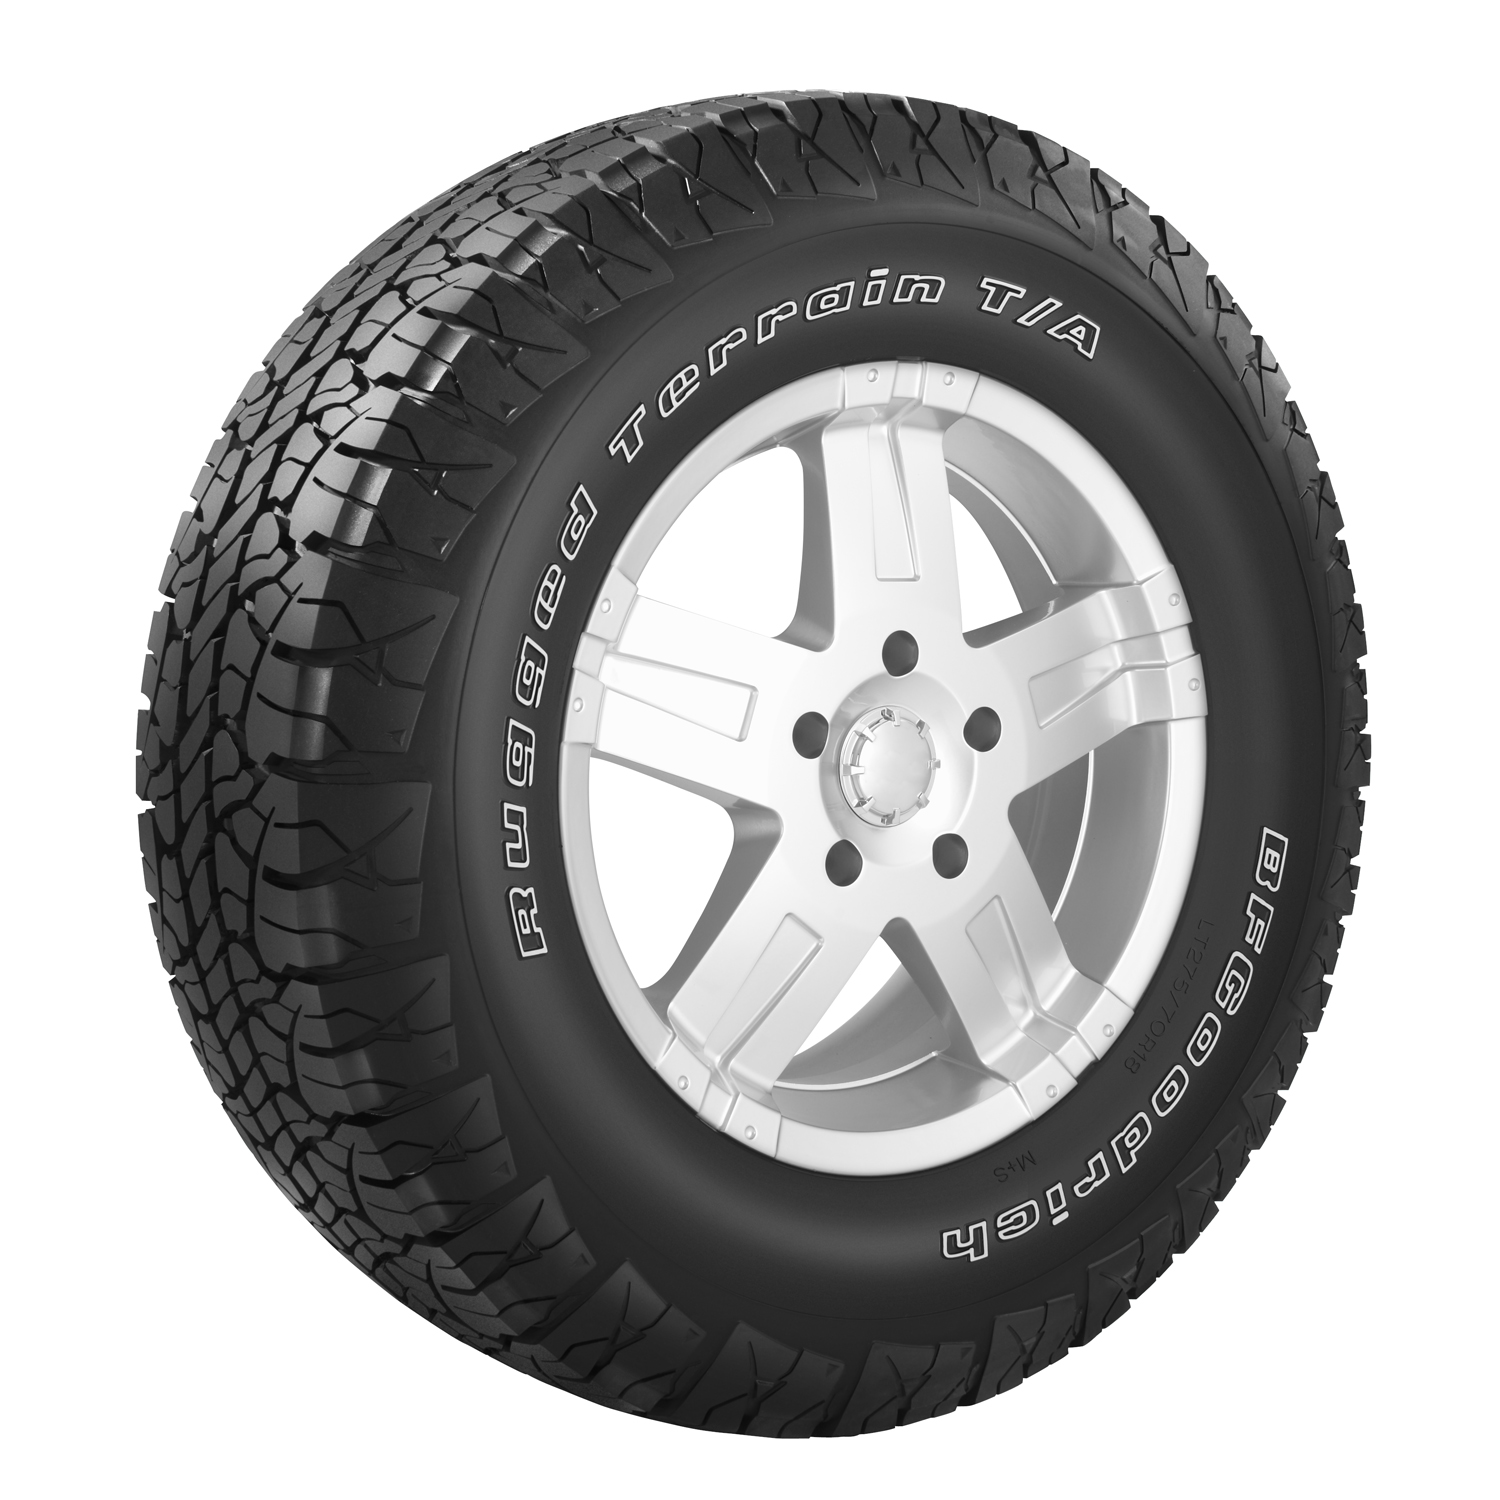 BFGoodrich  Rugged Terrain T/A - P265/70R16 111T OWL - All Season Tire